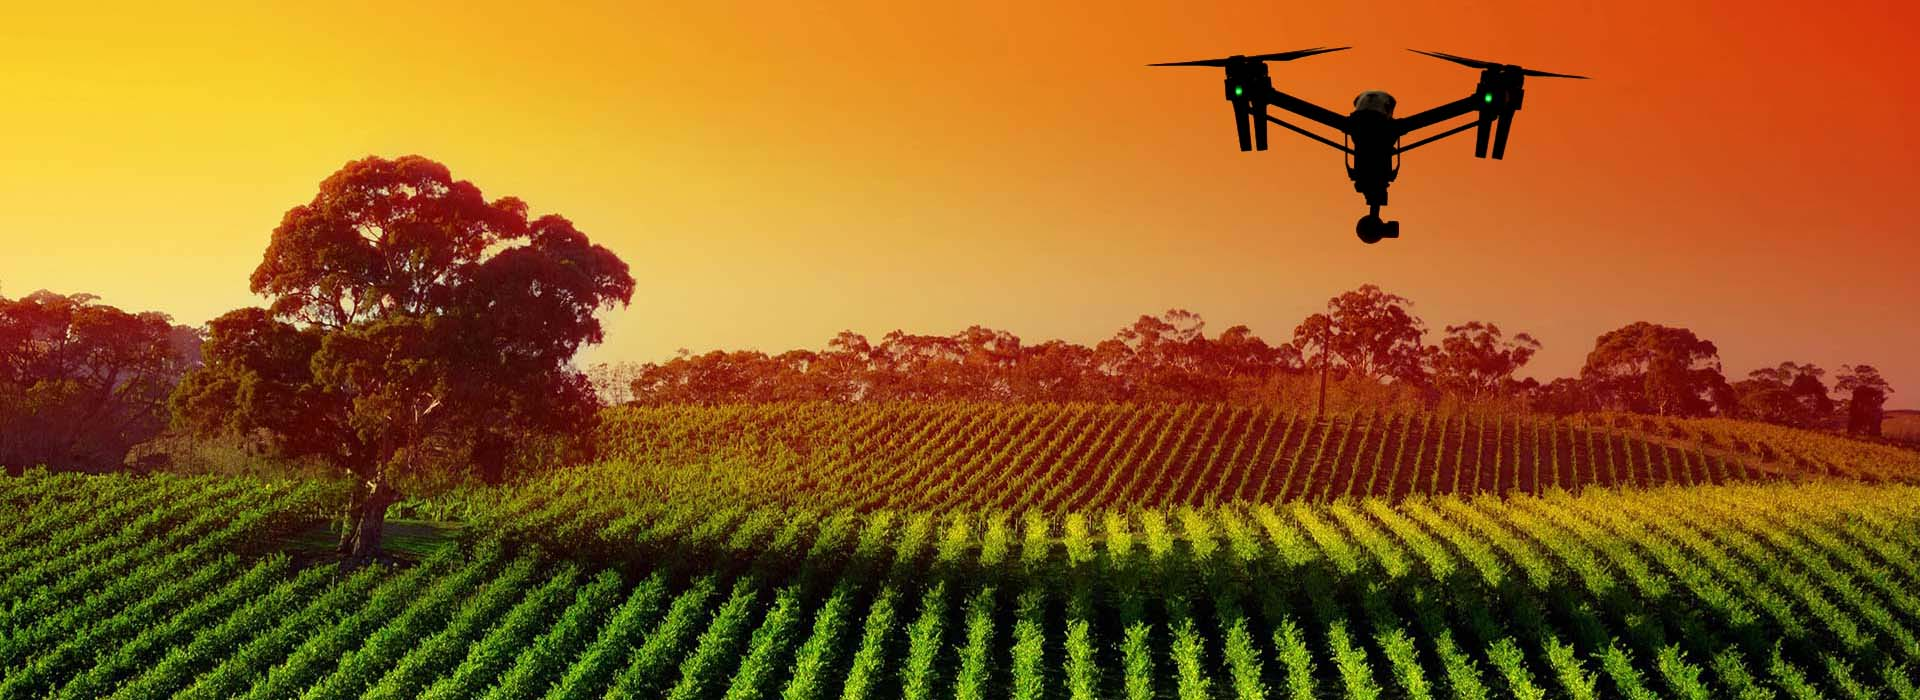 drone_agriculture_background